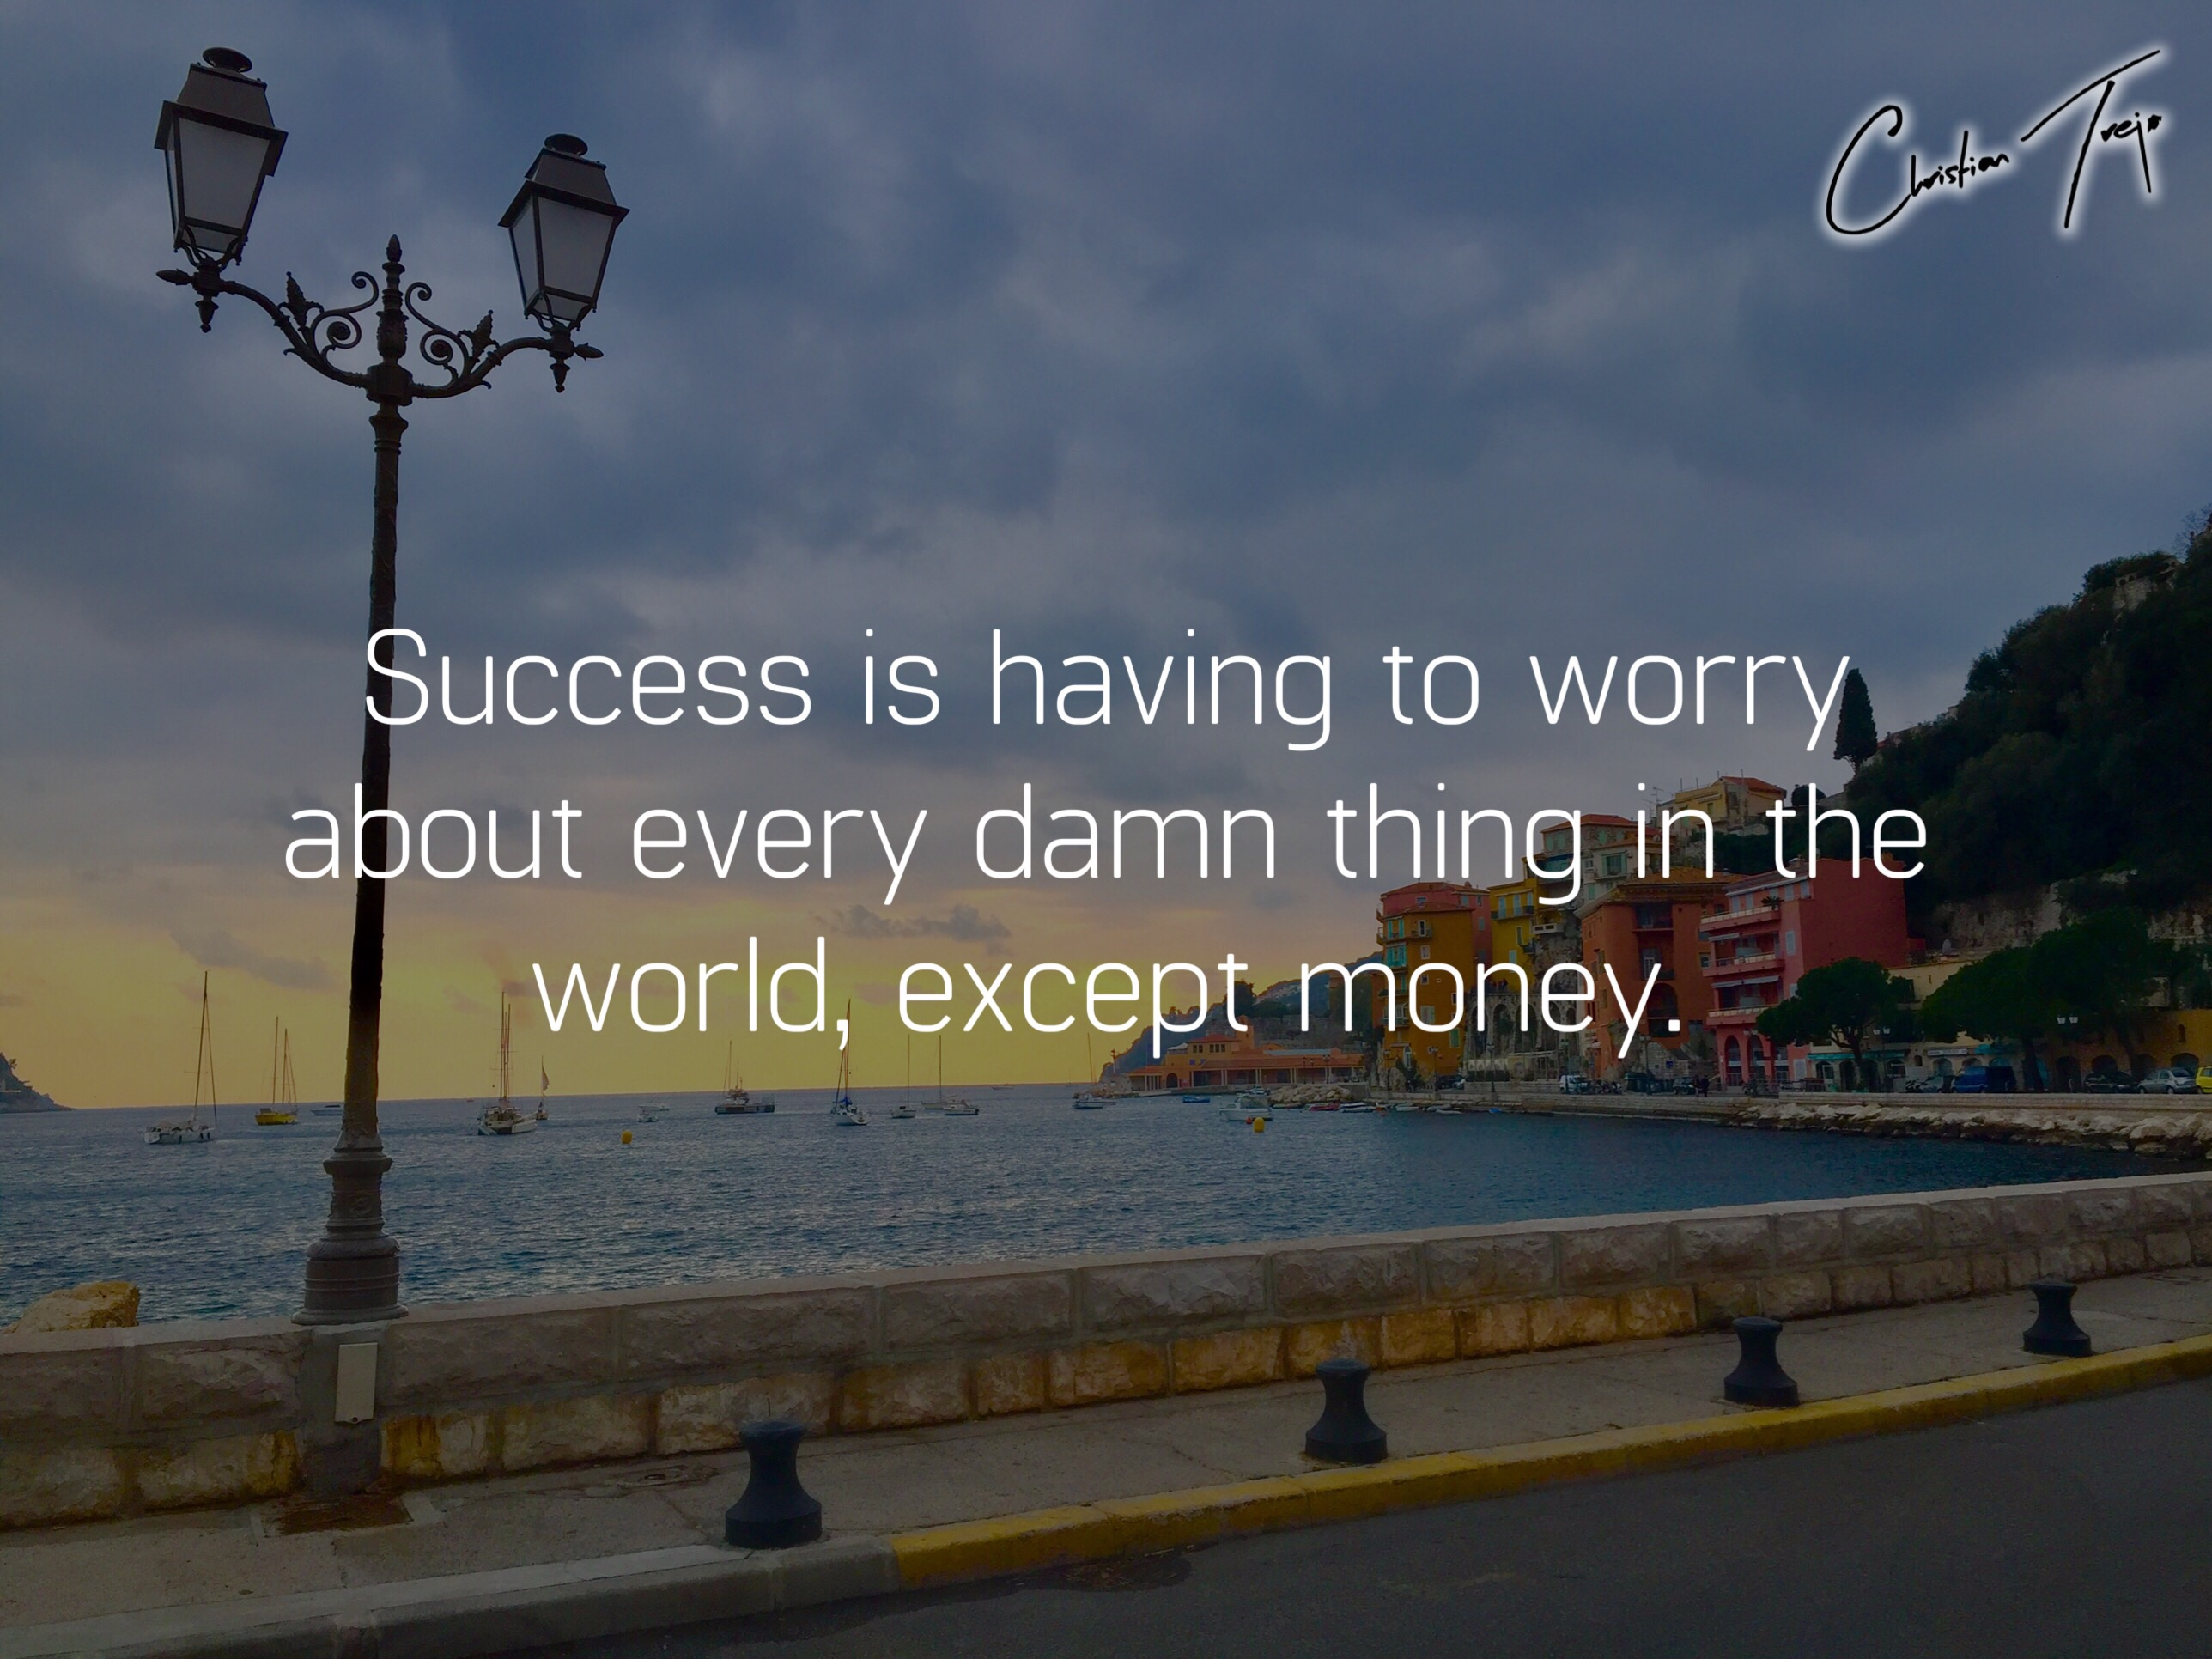 When To Worry About Money?